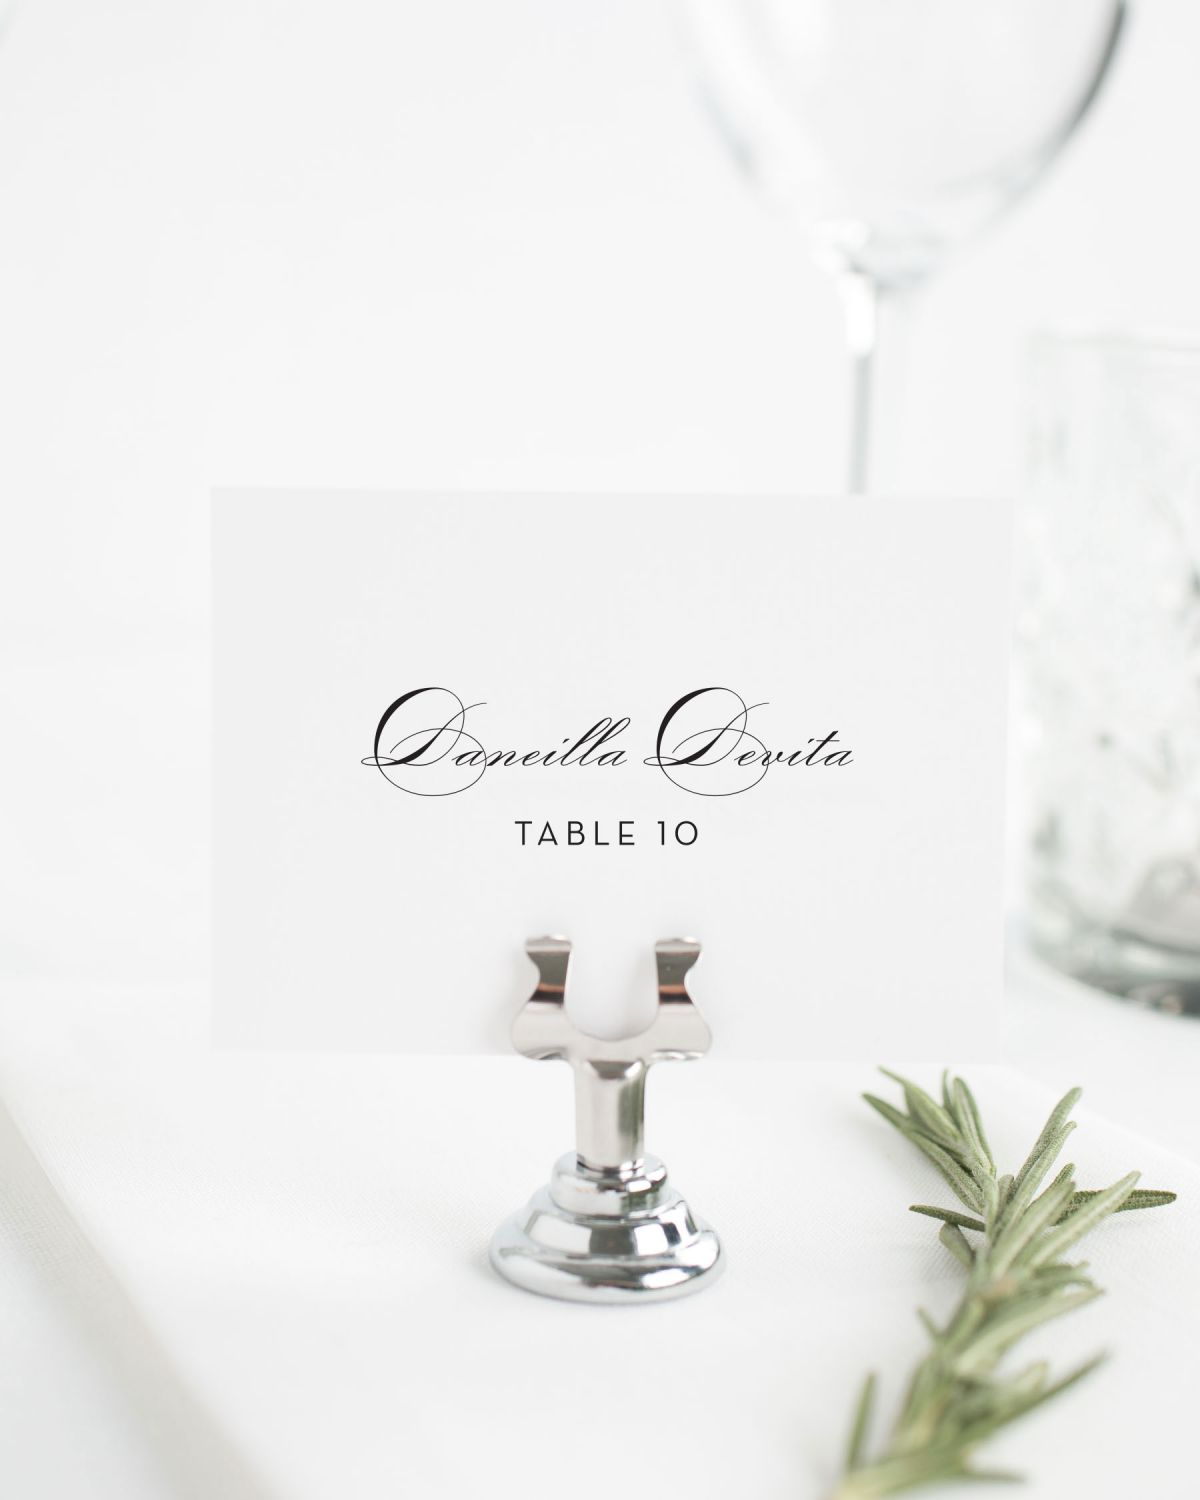 classic wedding place cards - Wedding Place Cards